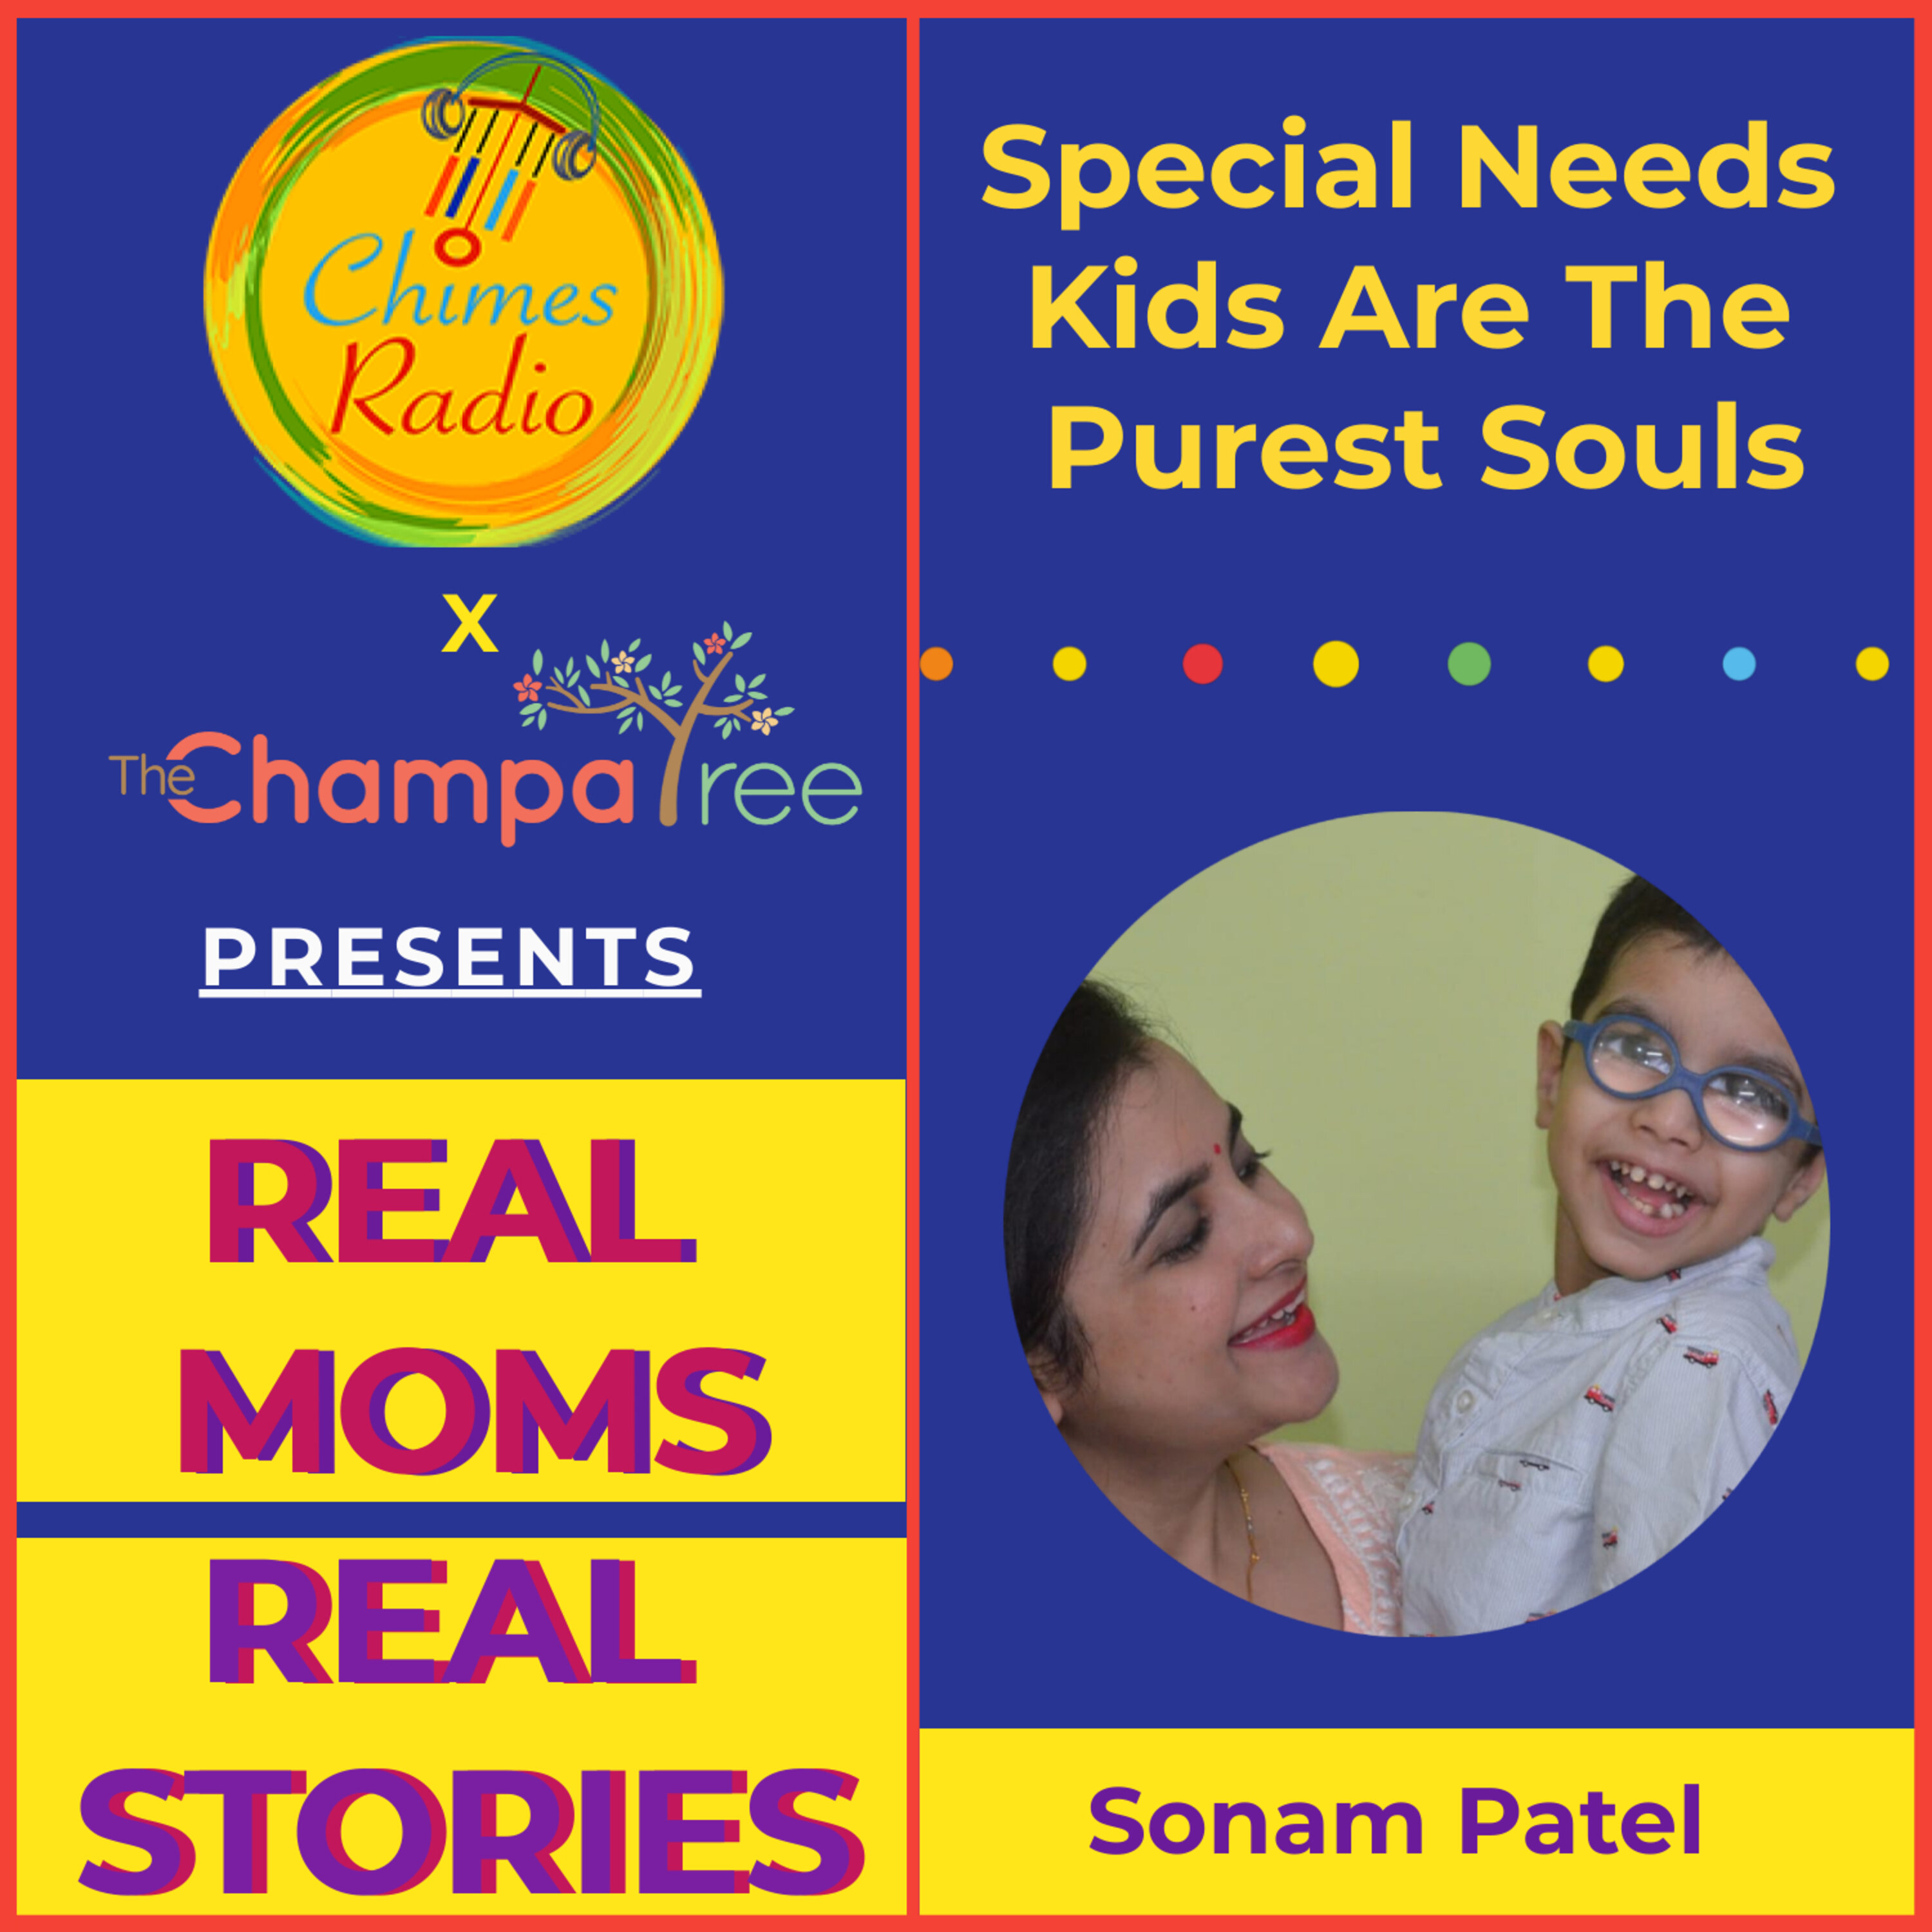 Special Needs Kids Are The Purest Souls - Sonam Patel